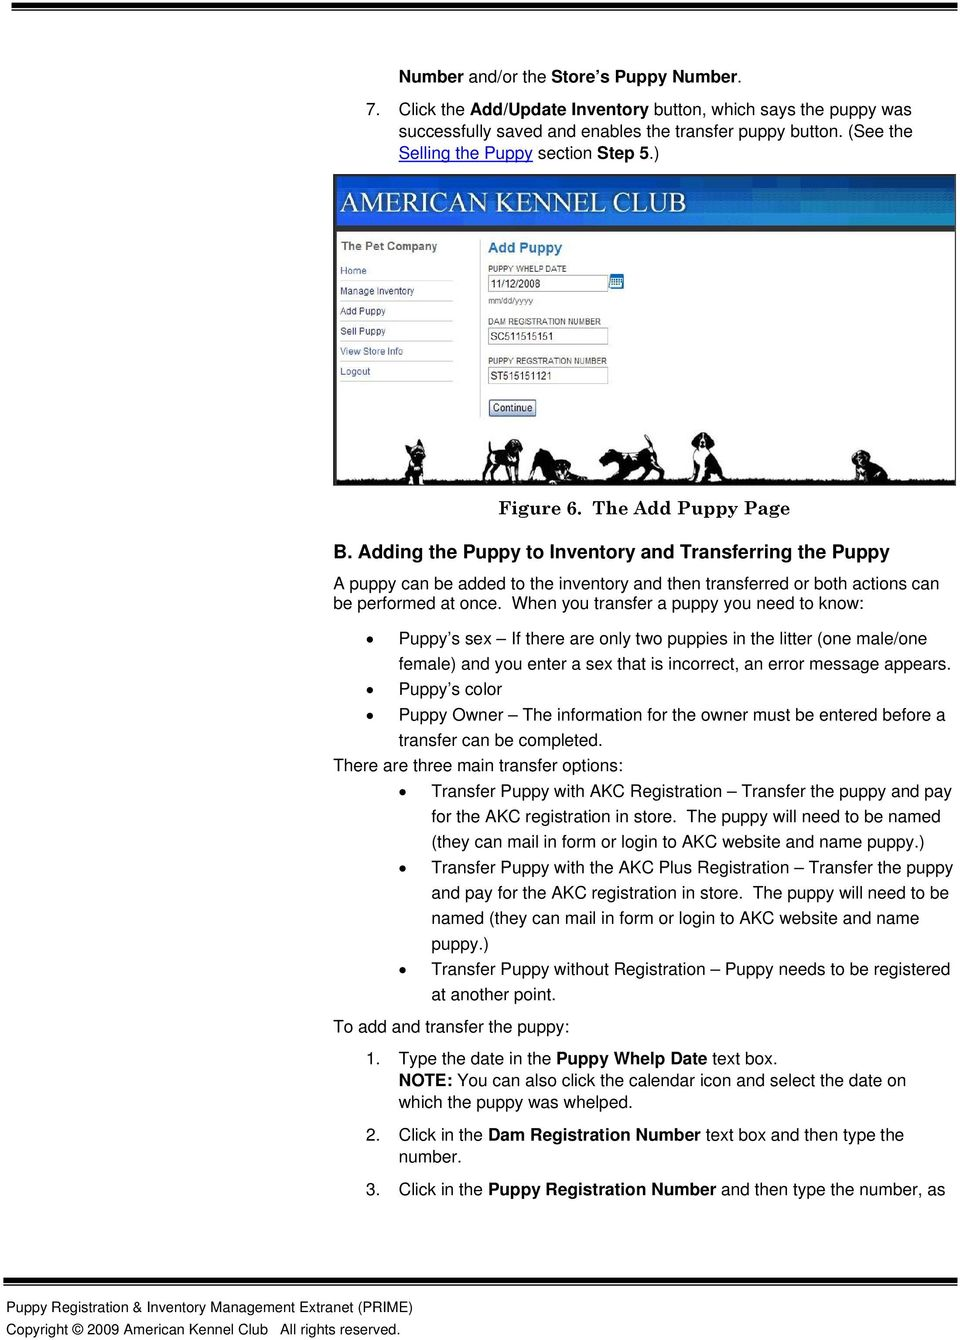 Puppy Registration & Inventory Management Extranet (PRIME) - PDF